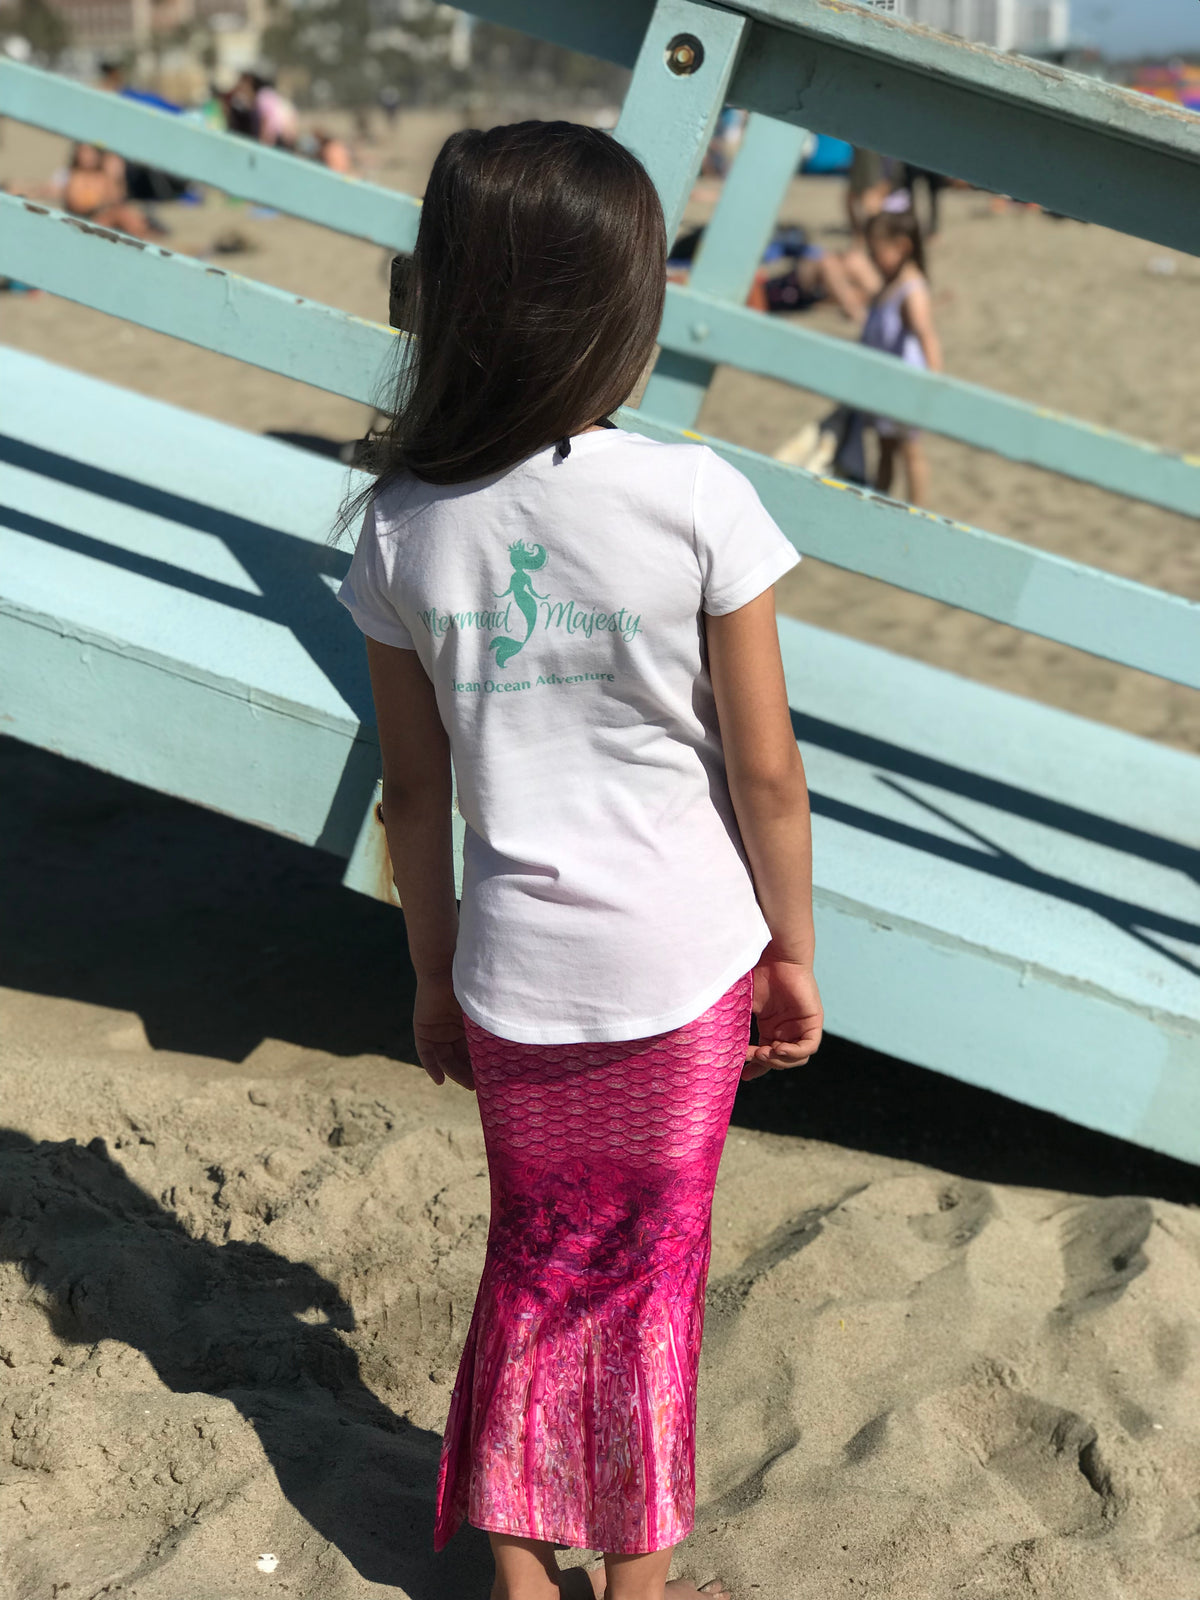 Mermaid Majesty Girl's Pocket T